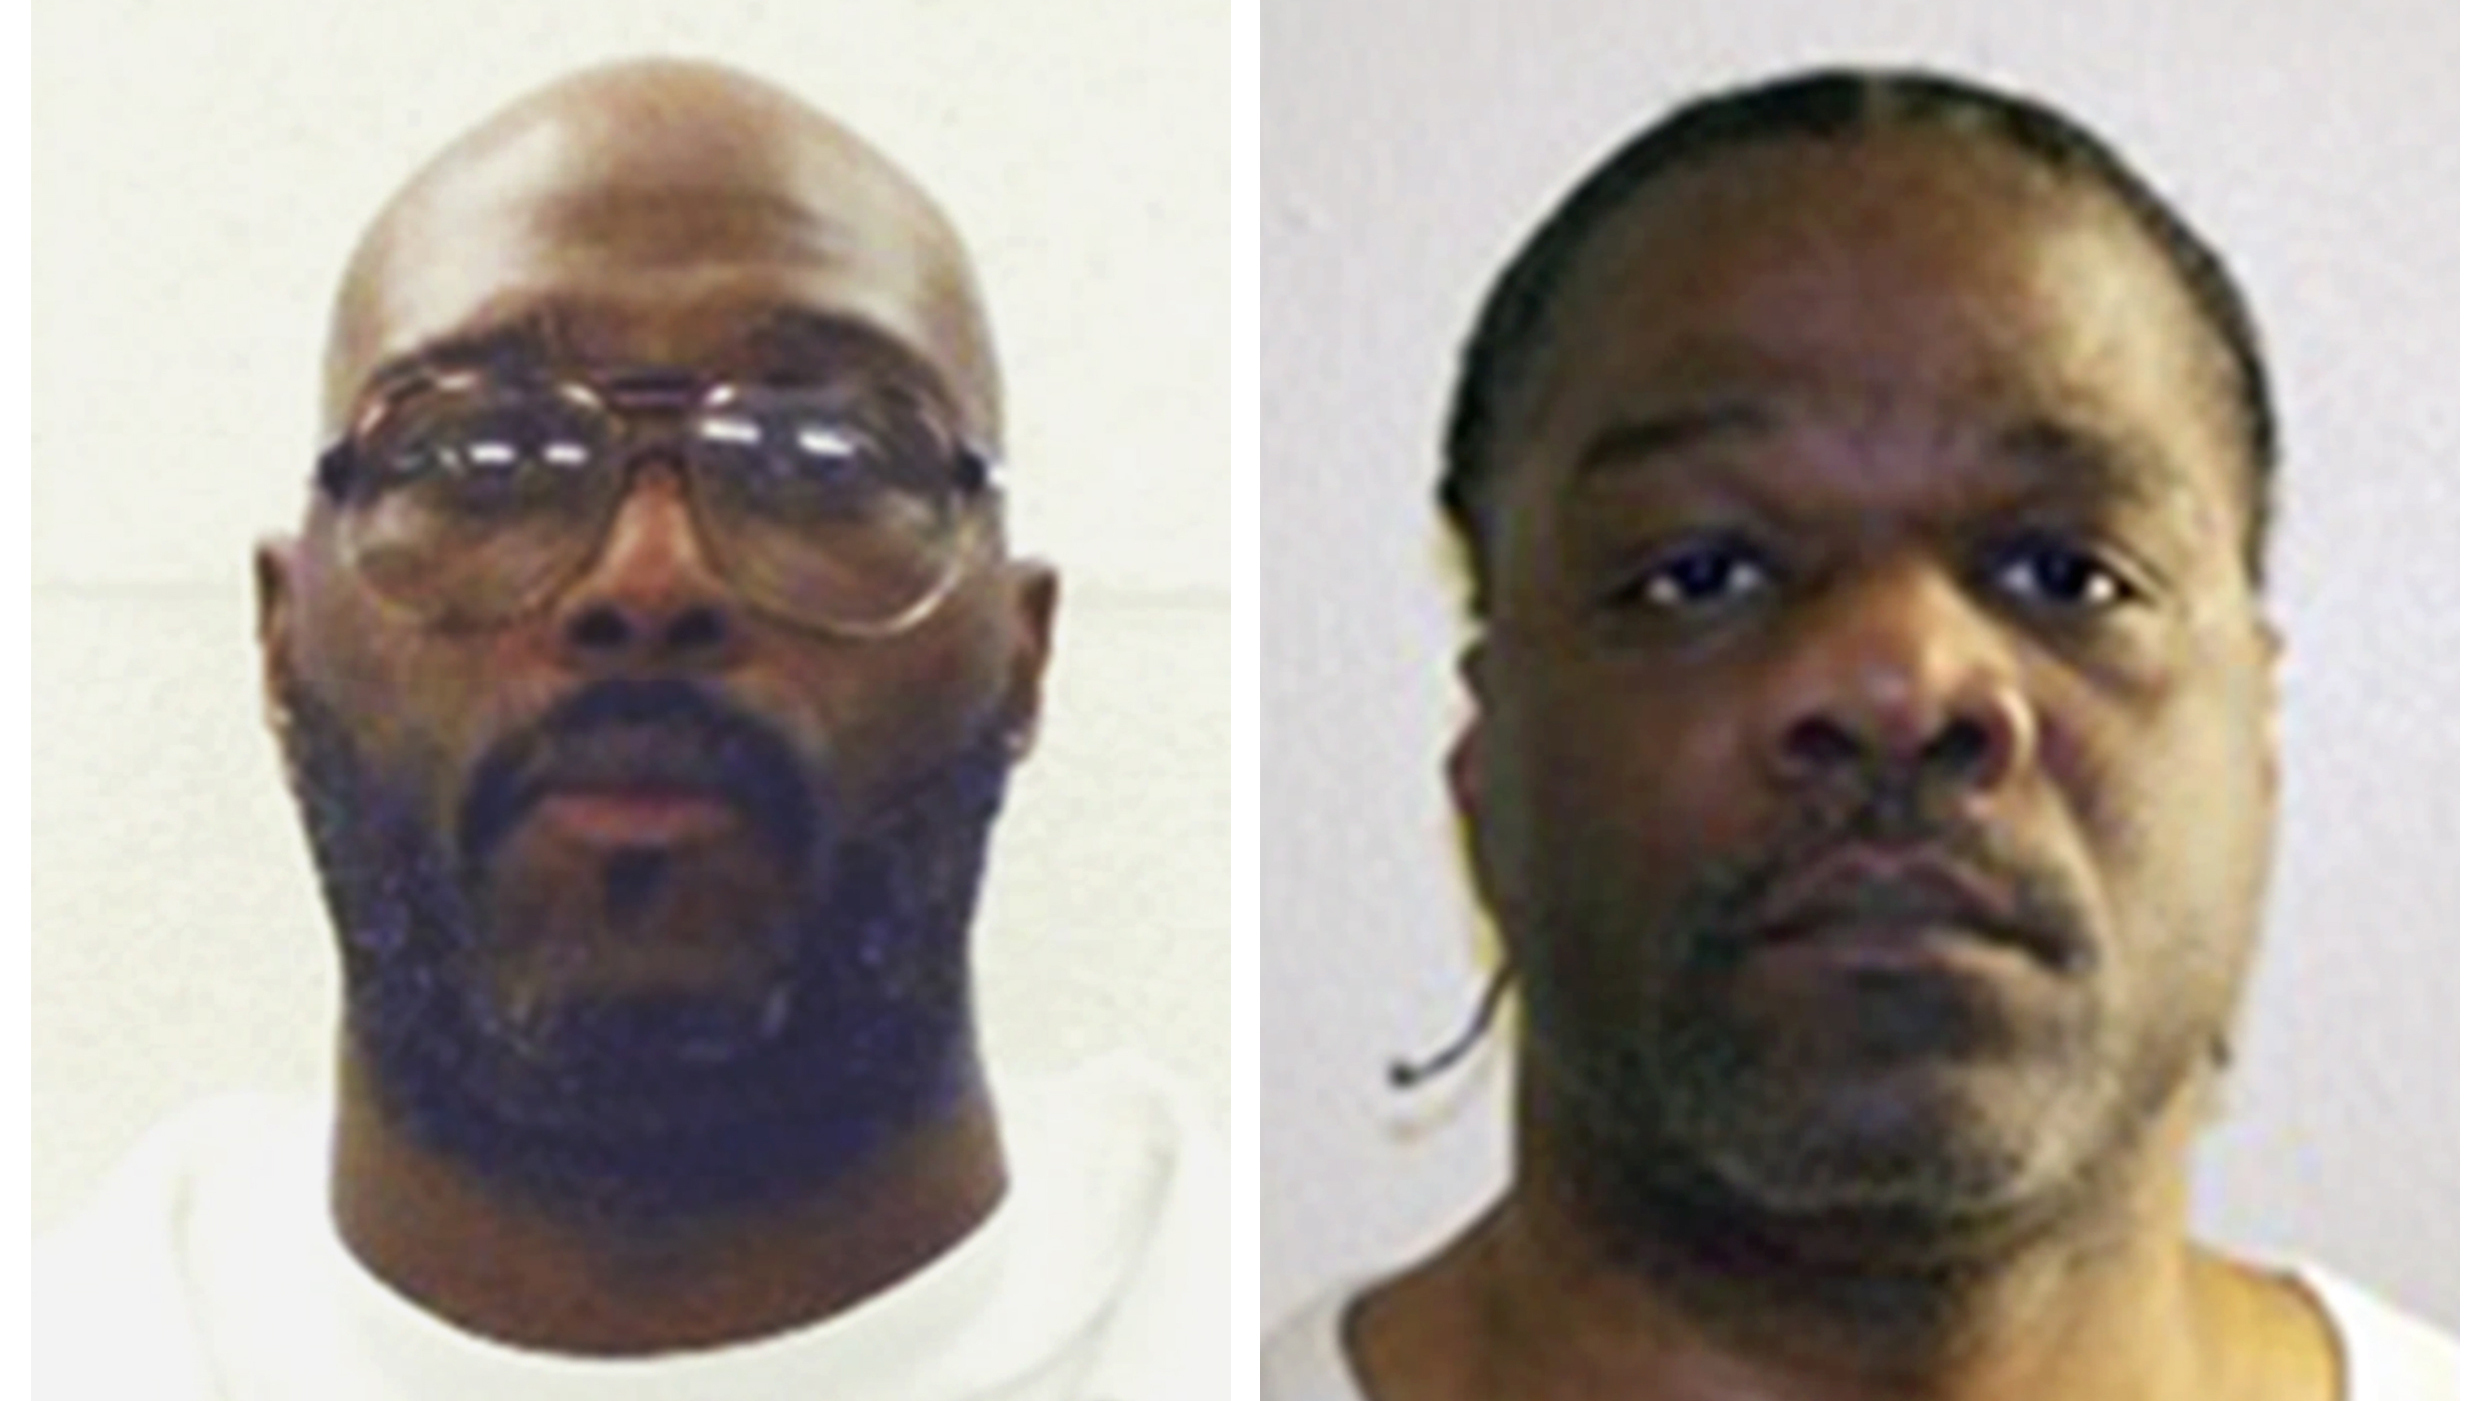 Death row inmates Stacey Johnson (left) and Ledell Lee are both scheduled to be put to death today, though court rulings have put those executions on hold for now.